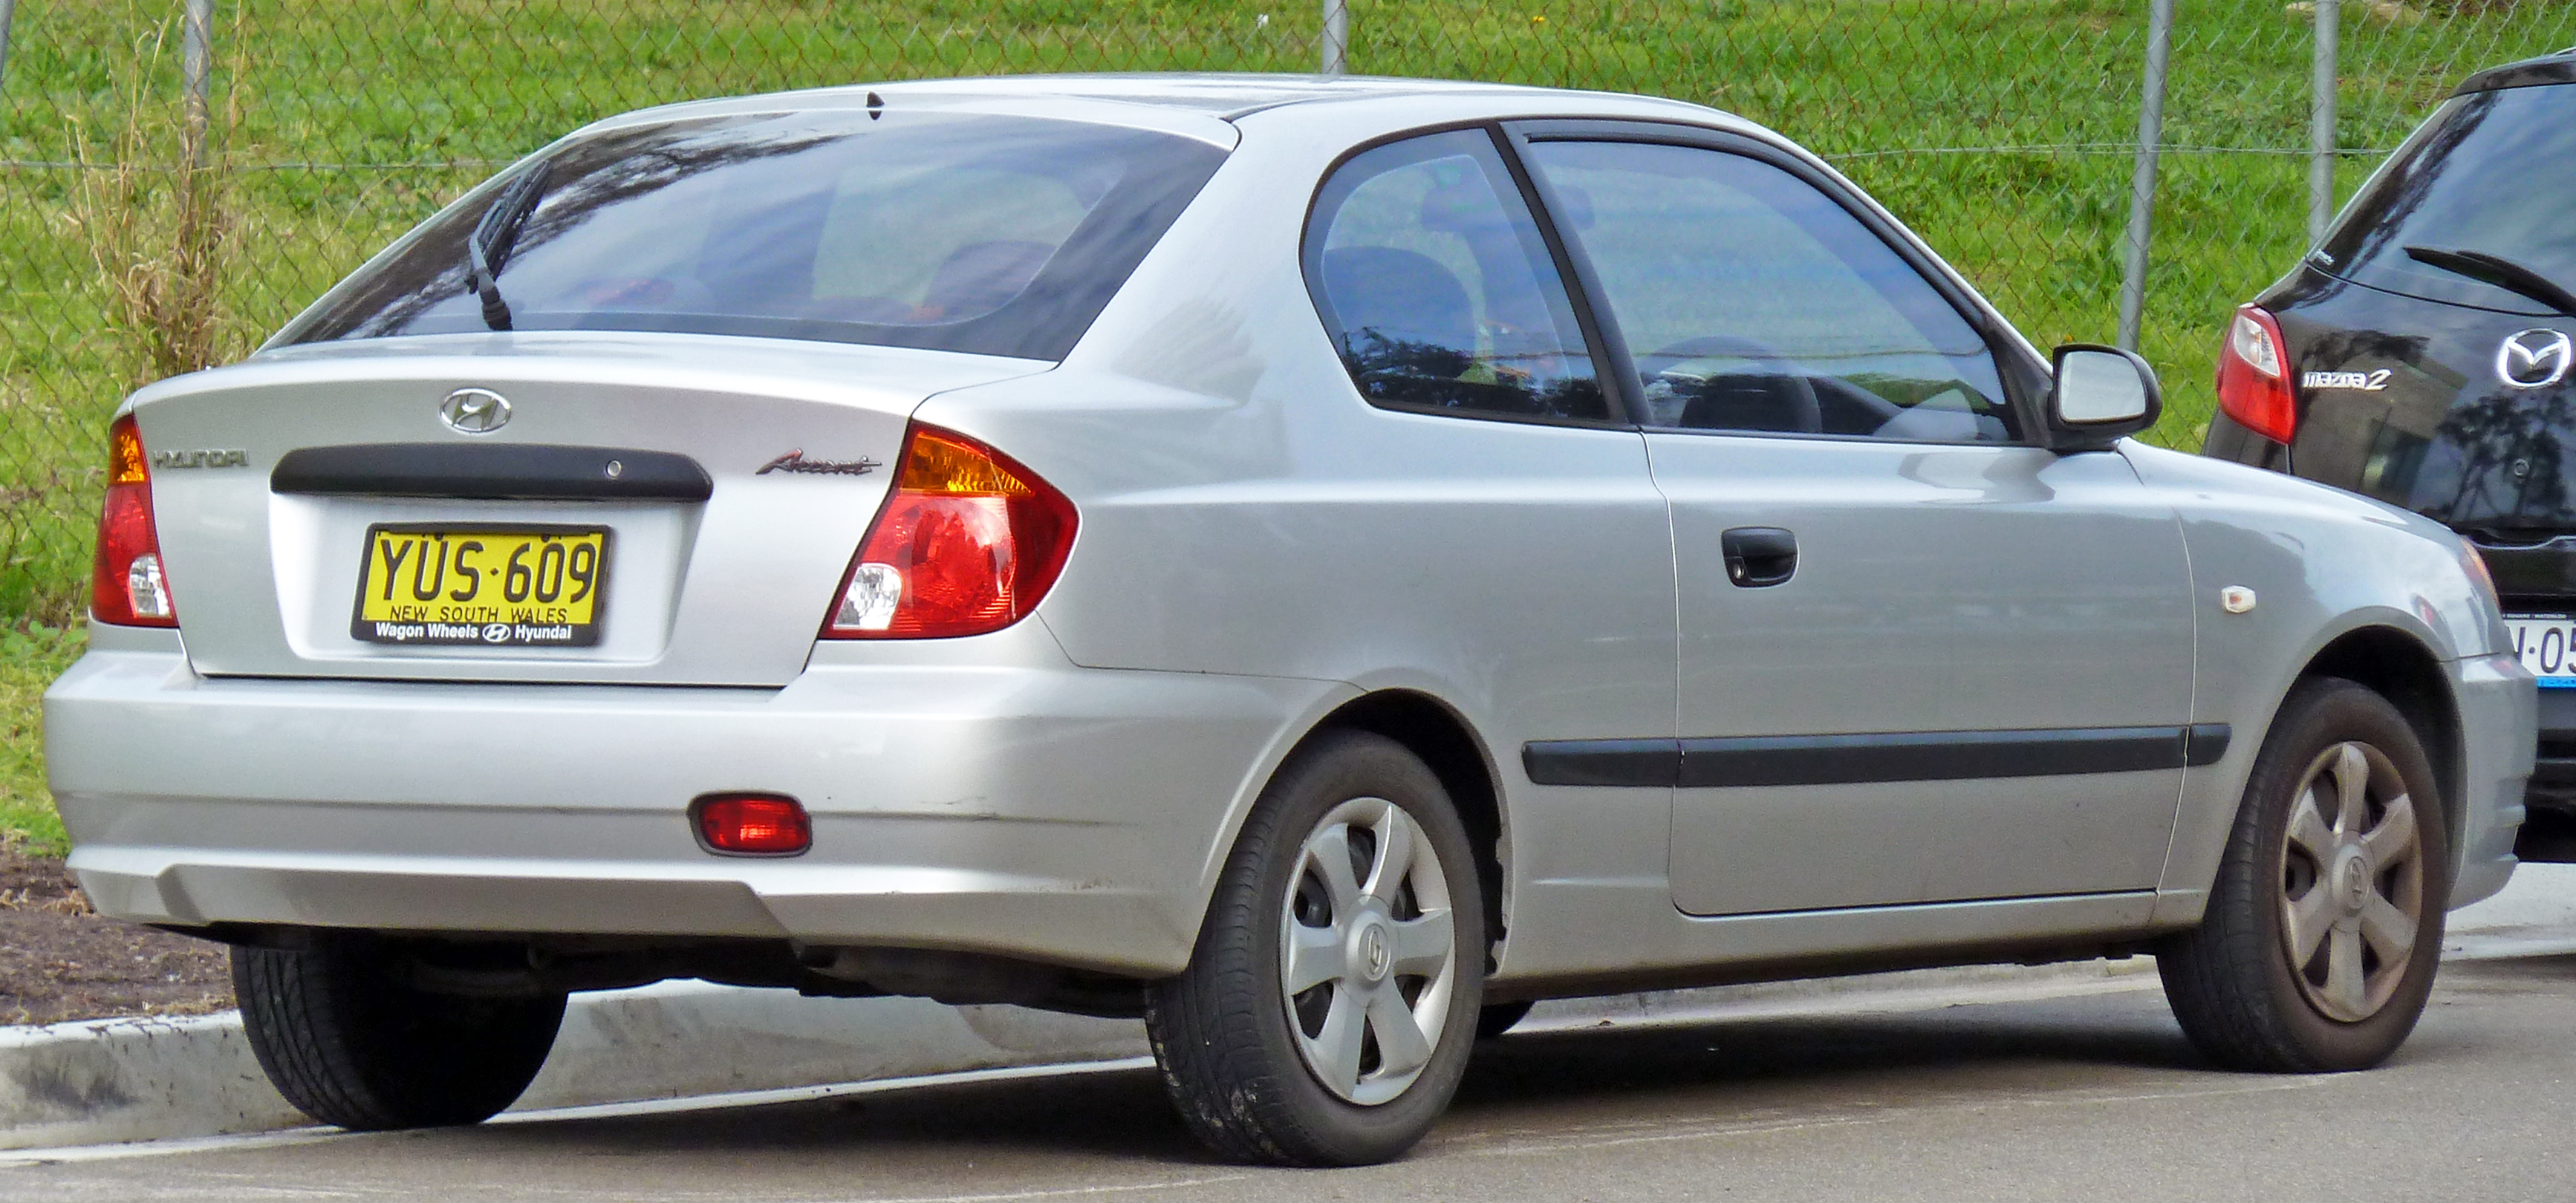 File 2003 Hyundai Accent Lc My03 Gl 3 Door Hatchback 01